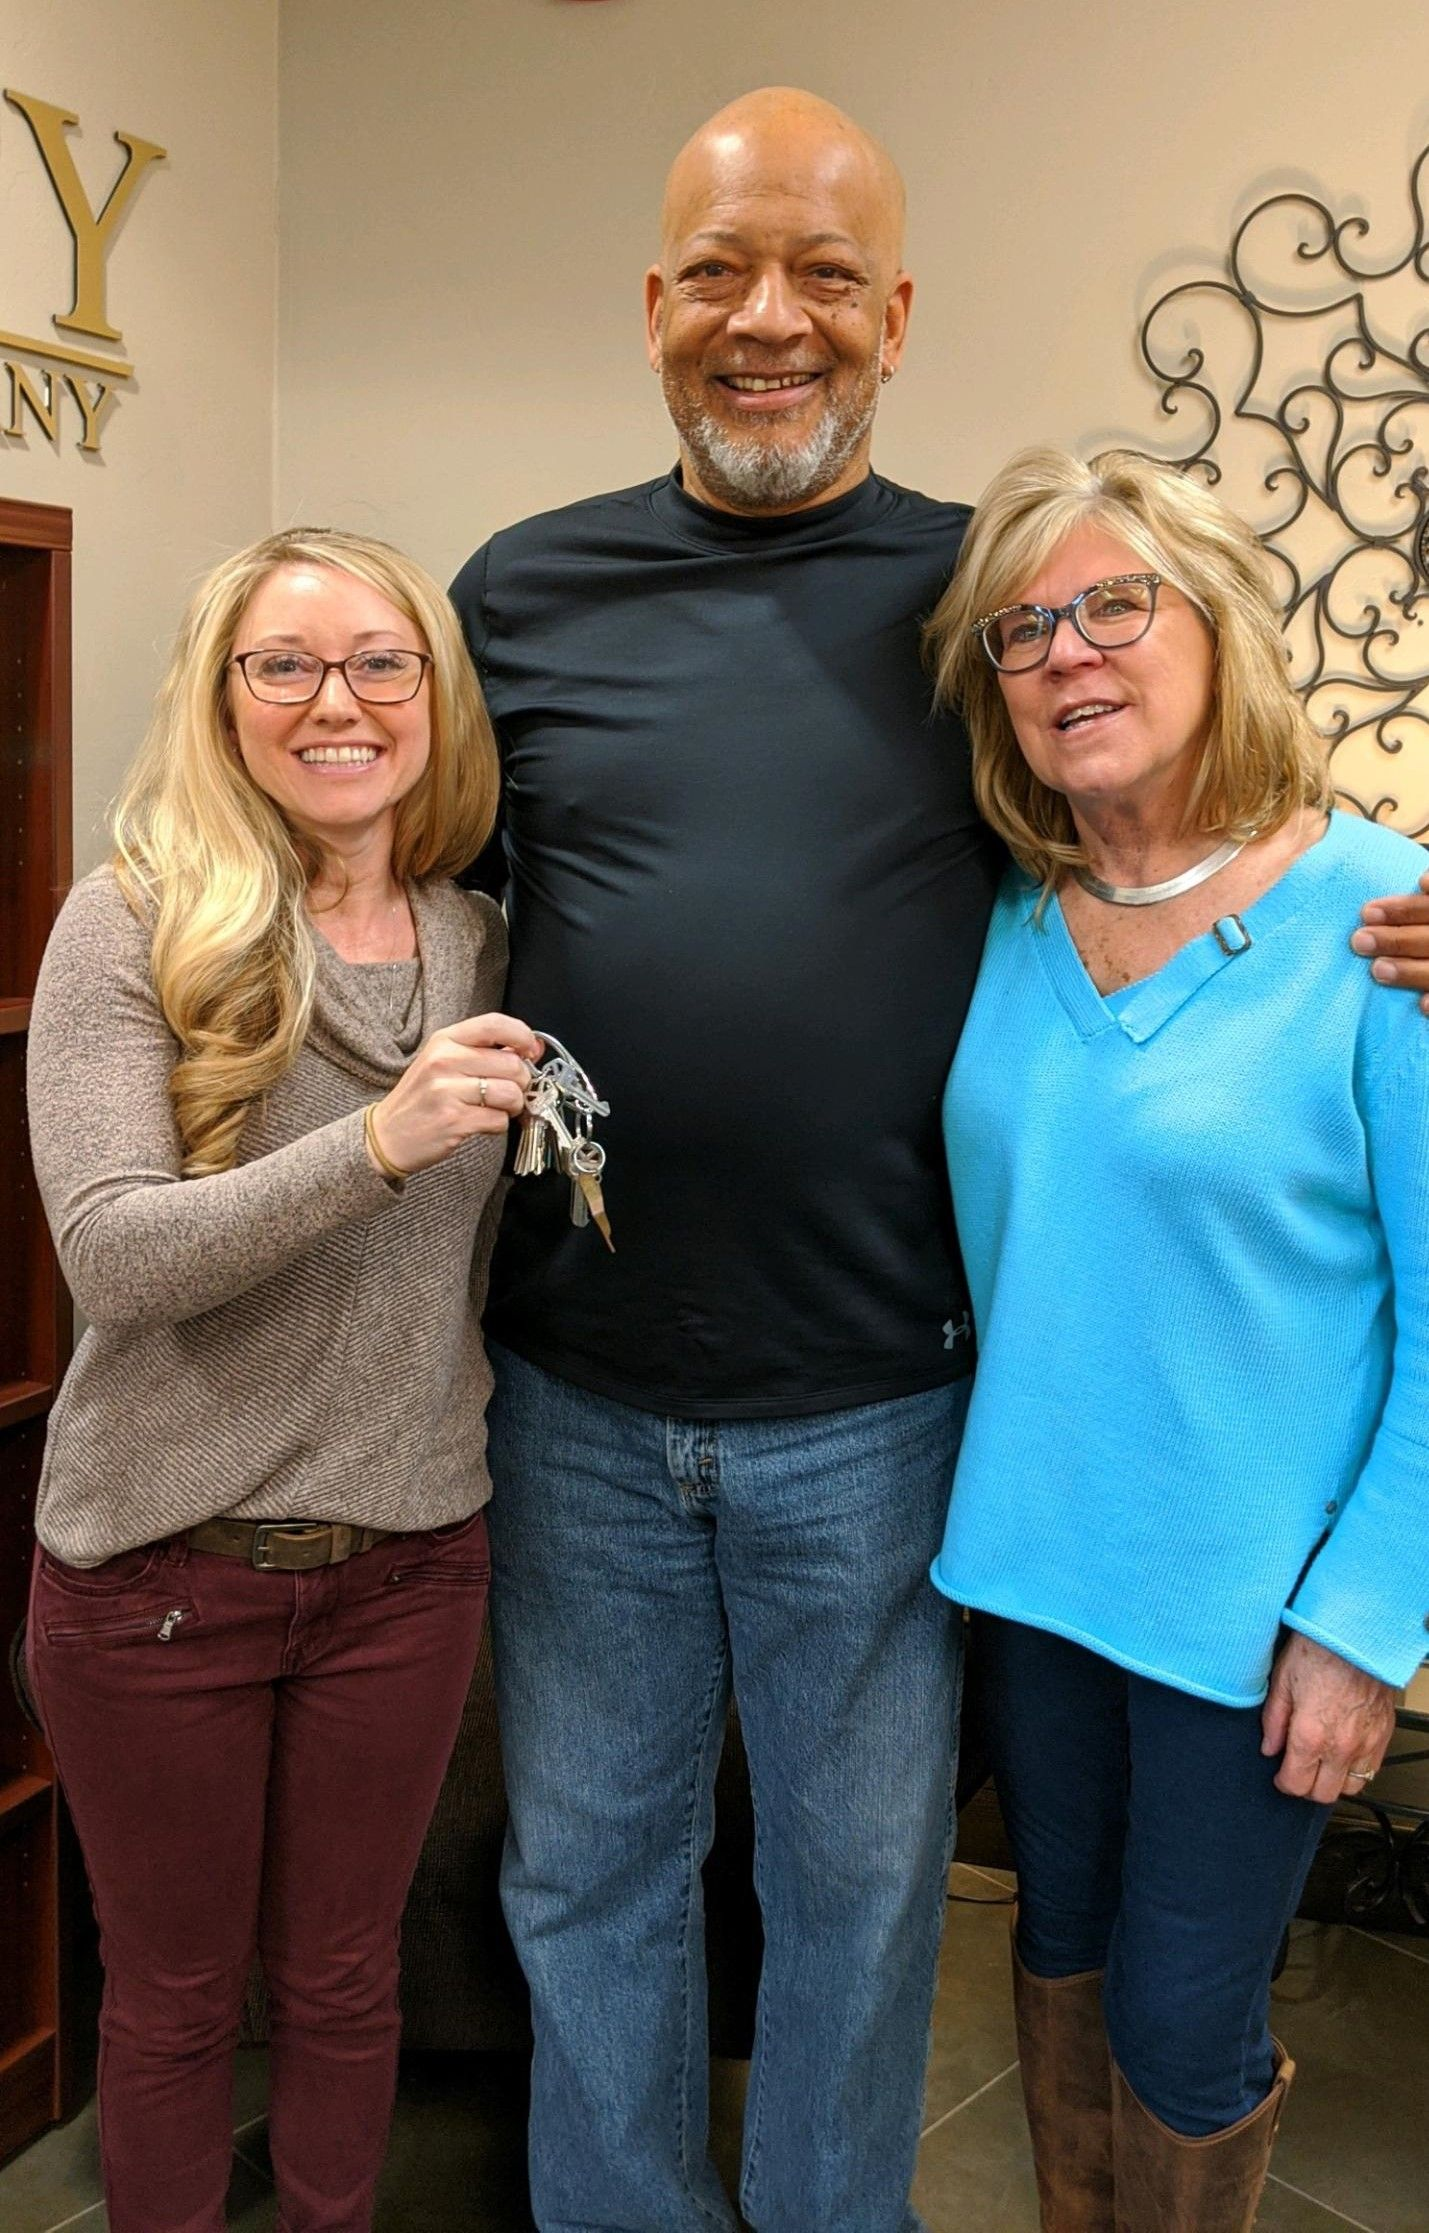 I am happy to hand the keys to their New Home over to Derek and Debra! Thank you for choosing me to be Your Realtor! Congratulations! #yourrealtor #realestateagent #homesweethome #newhome #buyersagent #newhomeowners